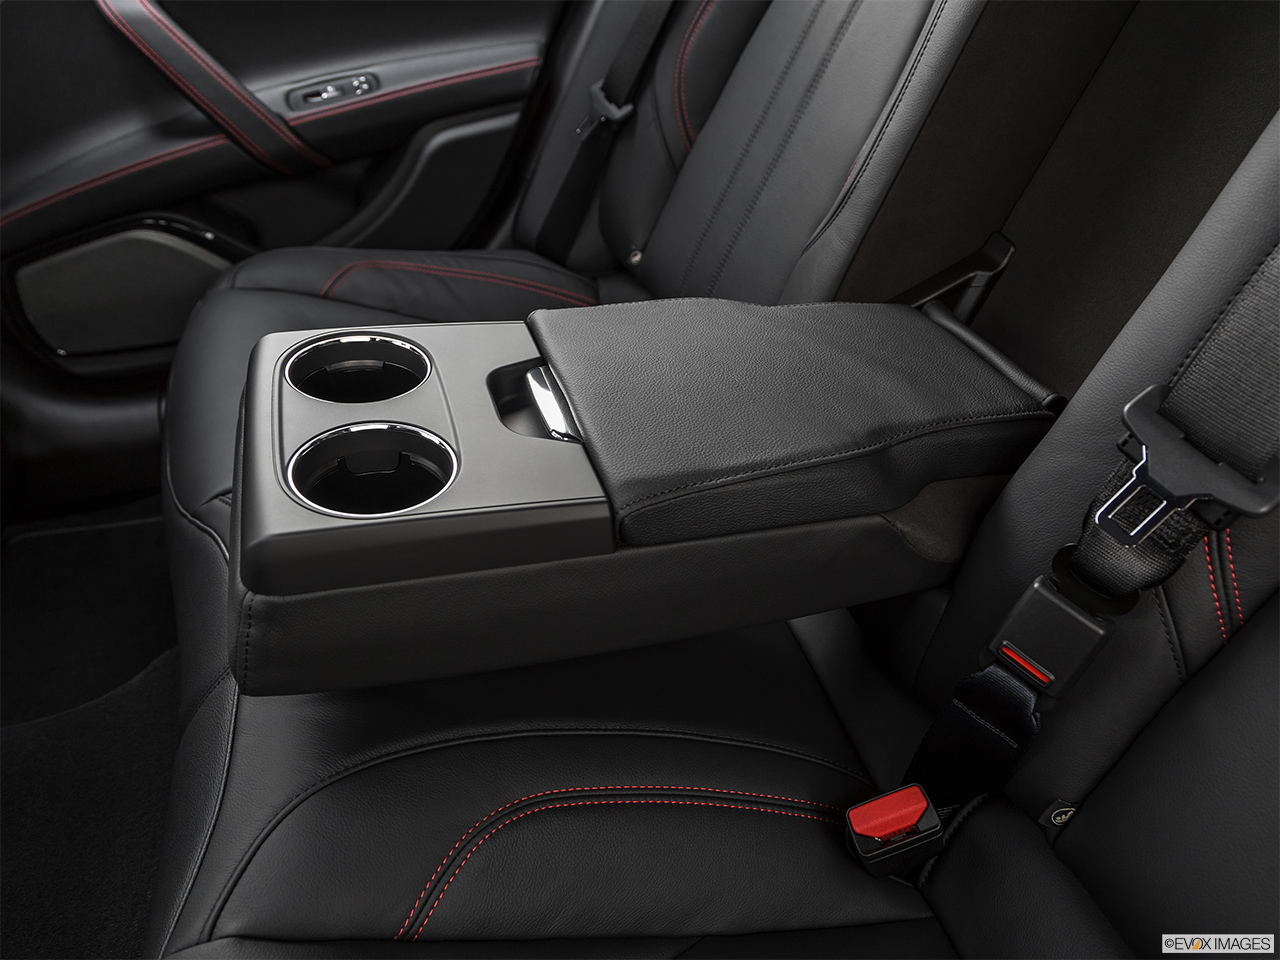 2019 Maserati Ghibli S Gransport Rear center console with closed lid from driver's side looking down.